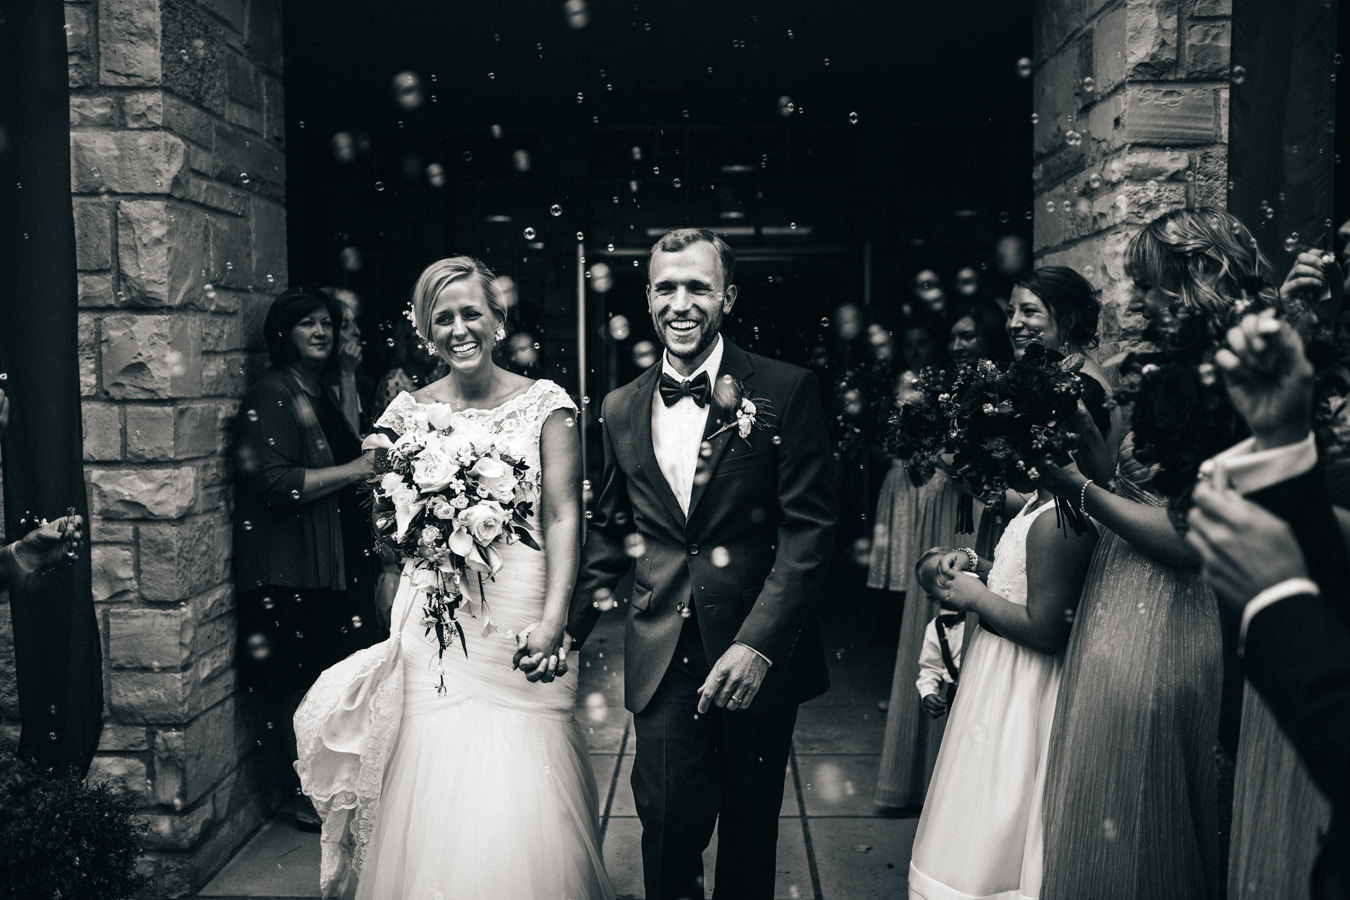 Black and white portrait of bride and groom exiting ceremony.